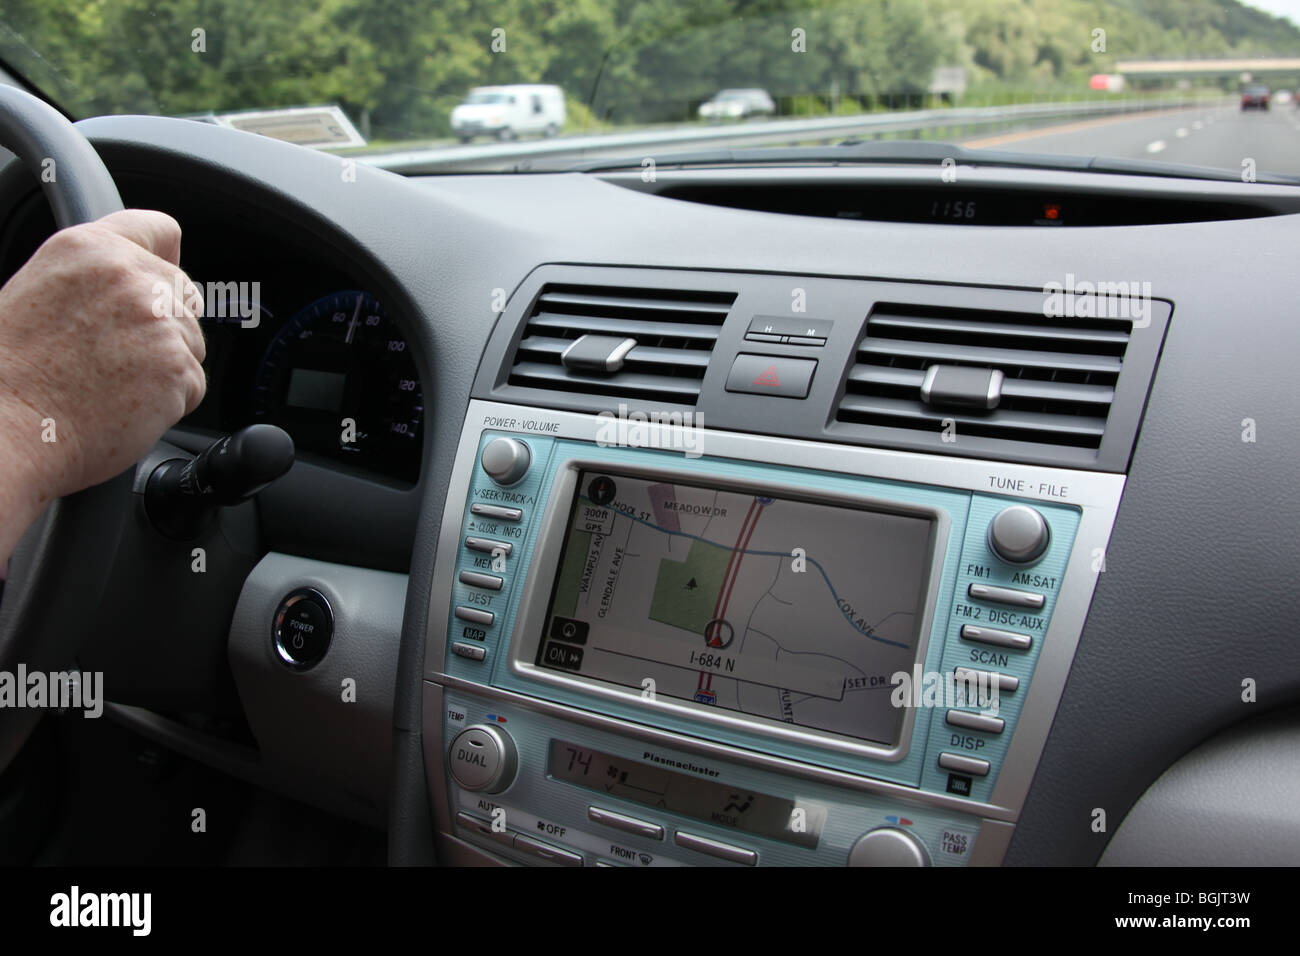 Driver uses car GPS system to navigate the roadways. - Stock Image